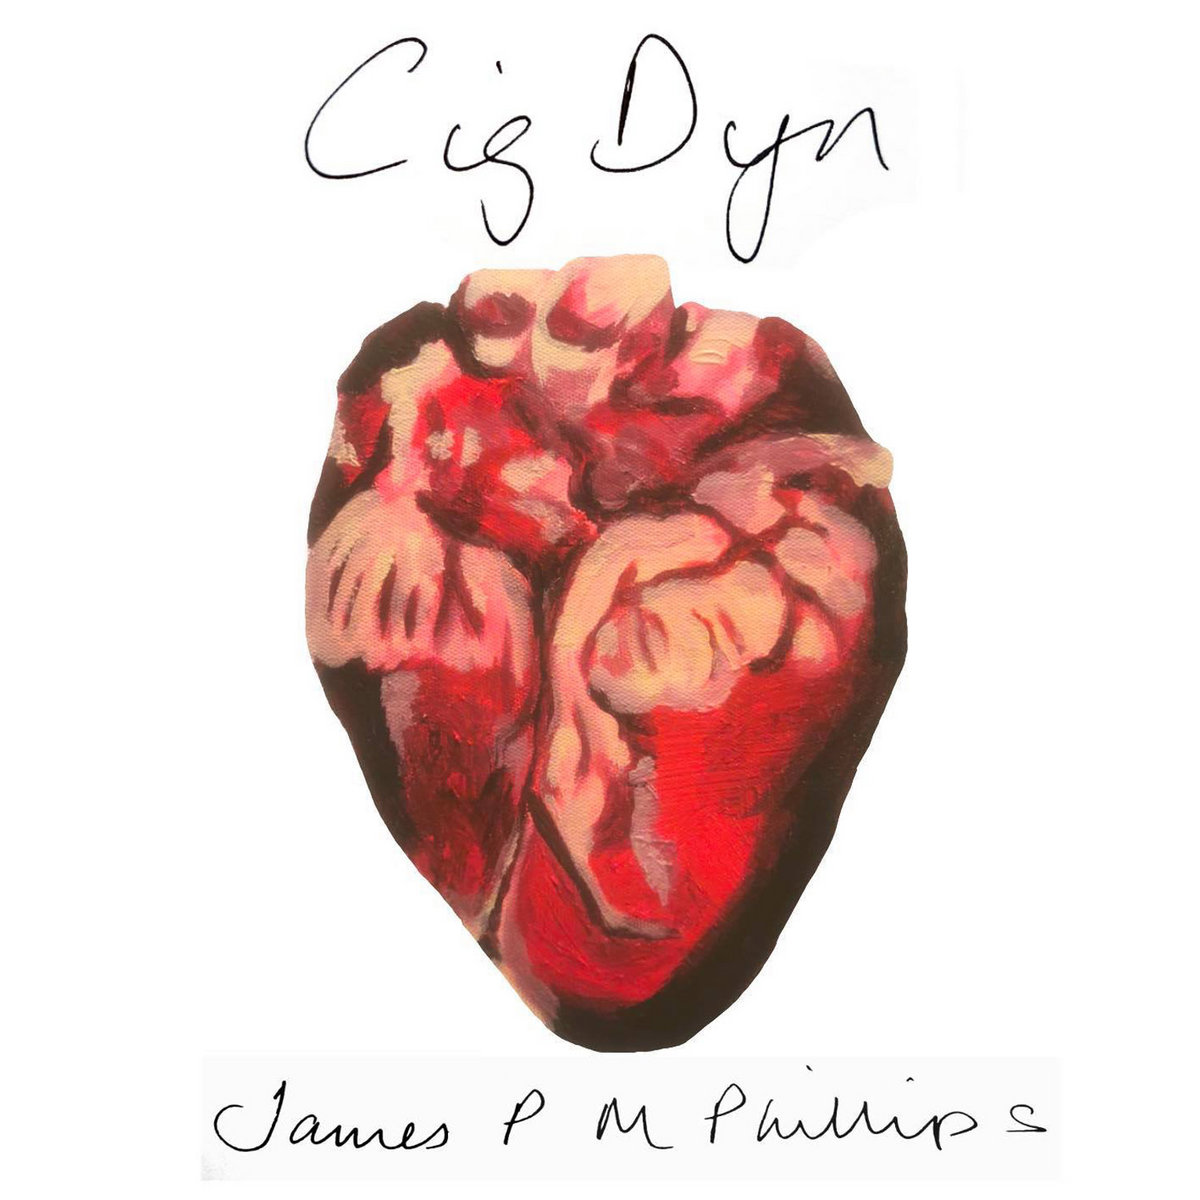 NEW RELEASE - James PM Phillips - Cig Dyn